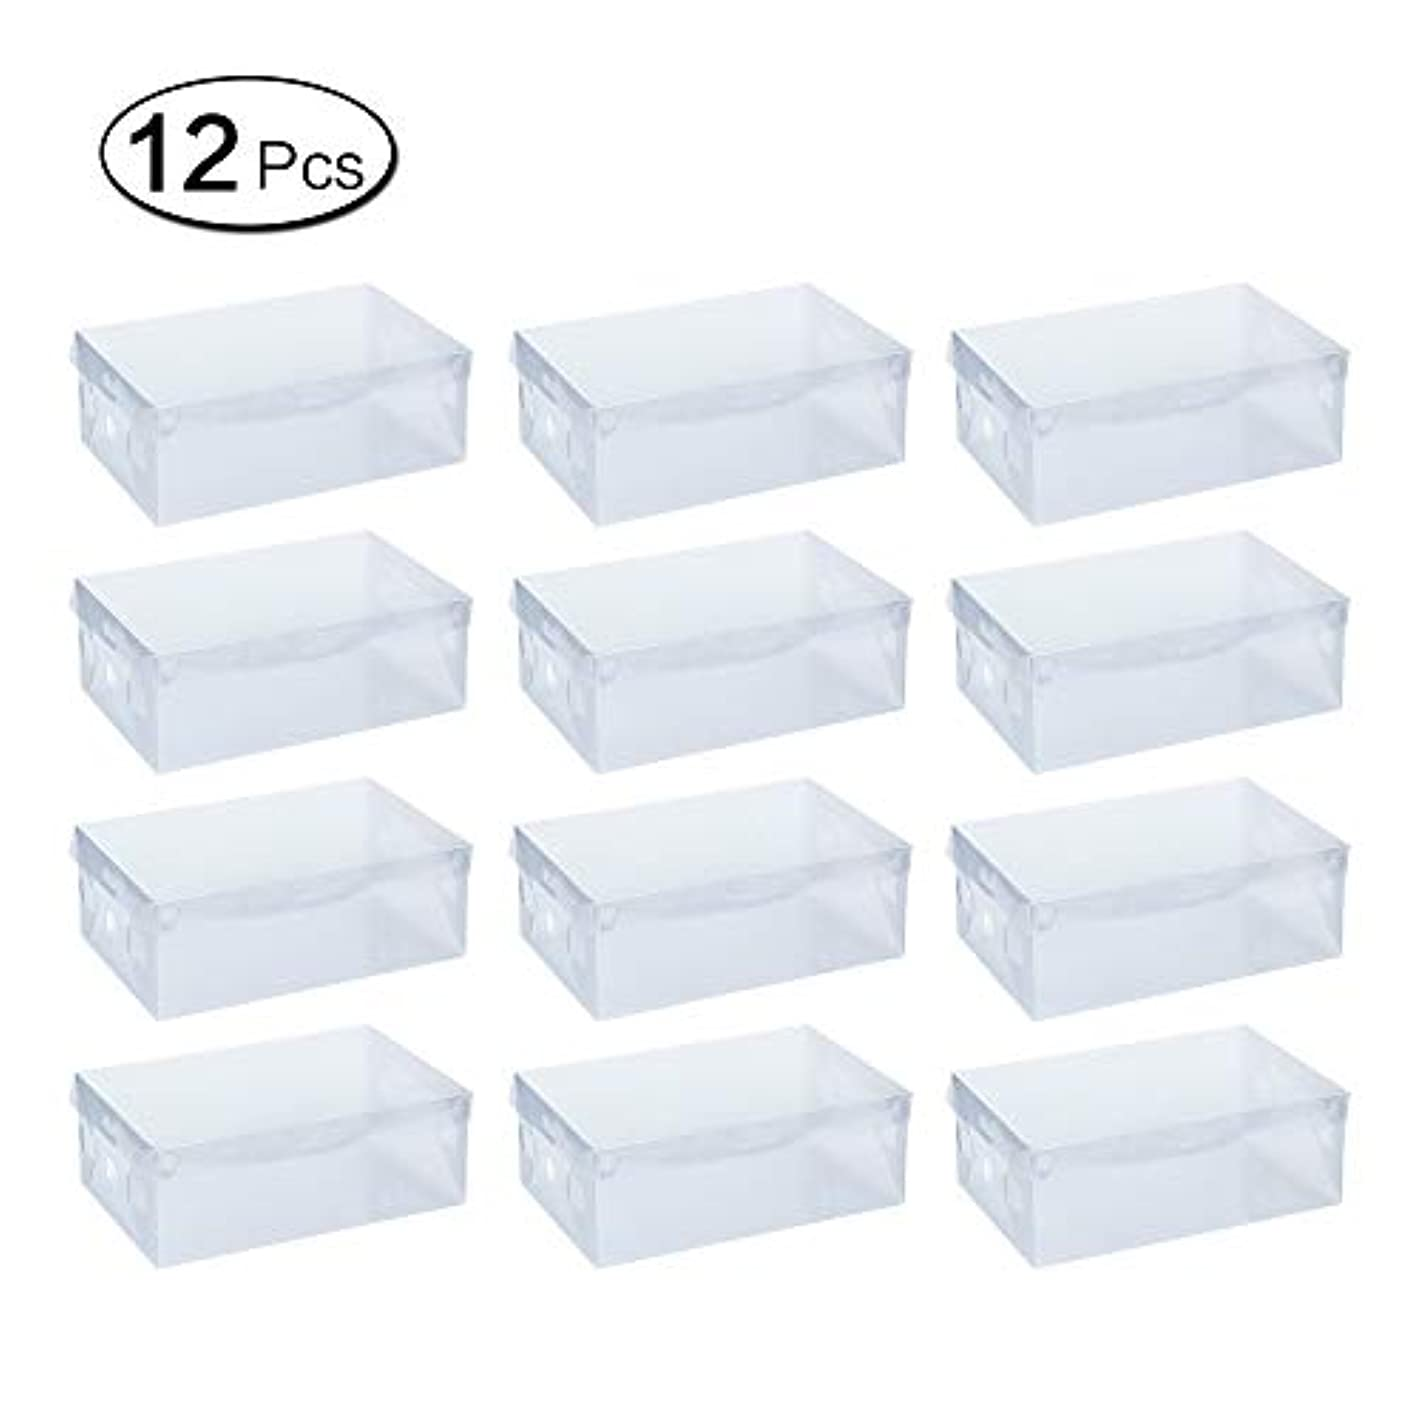 LANGING 12Pcs Plastic Shoe Boxes Stackable Clear Storage Boxes Foldable Shoes Container Organiser